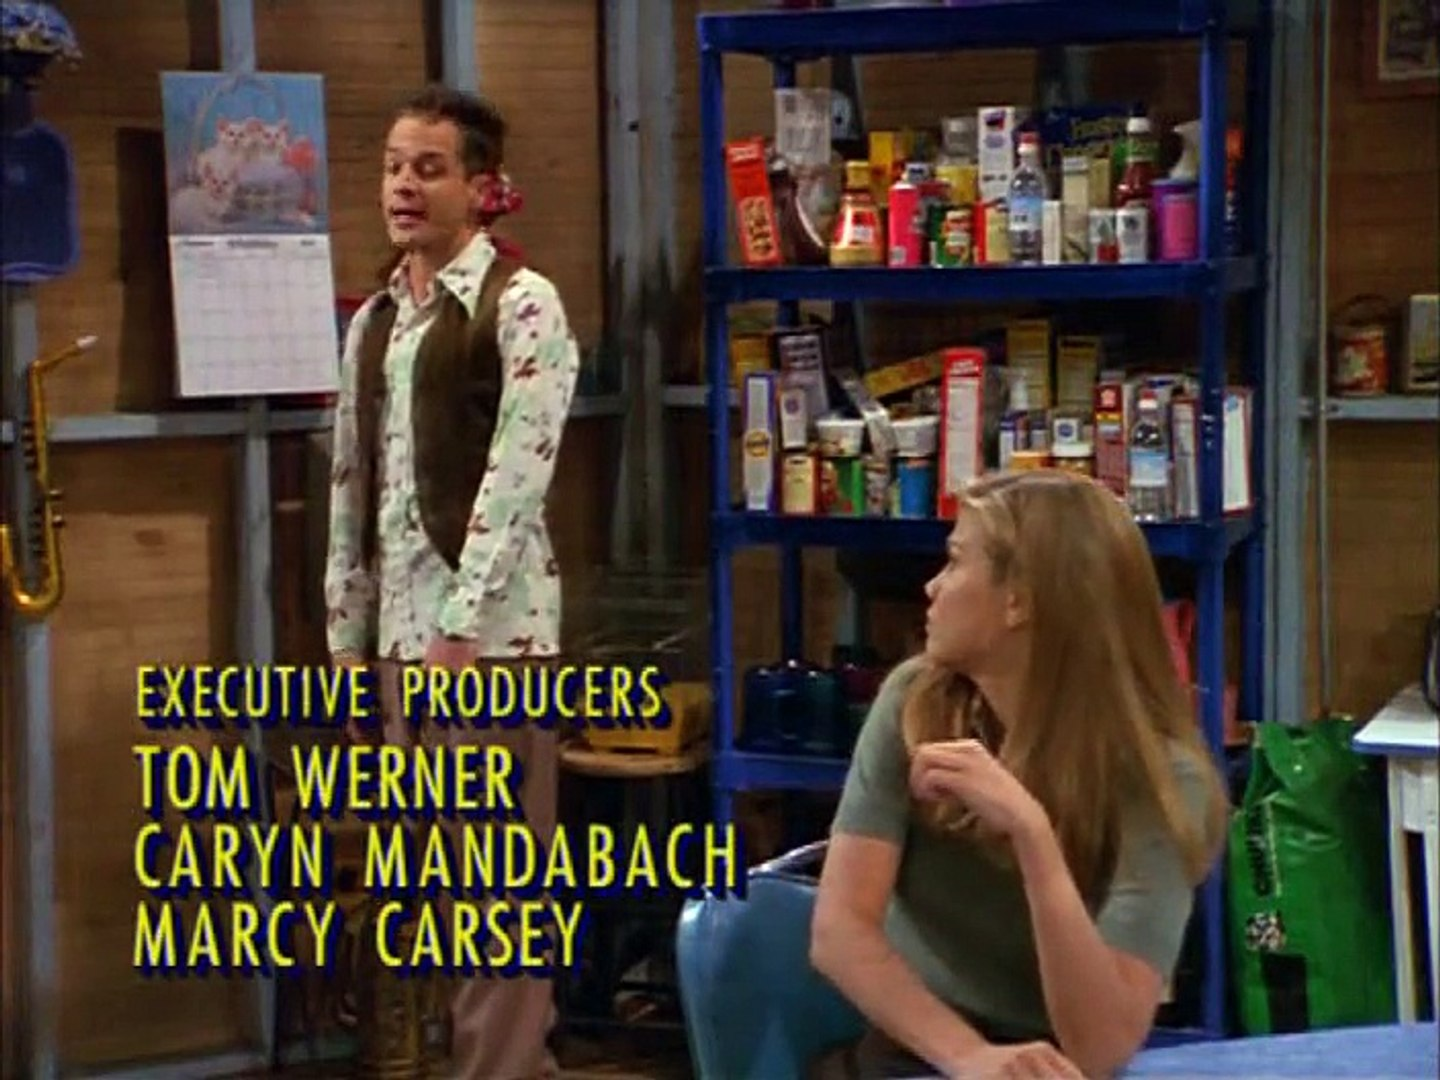 3rd Rock From The Sun S02 Episode 04 - Big Angry Virgin From Outer Space